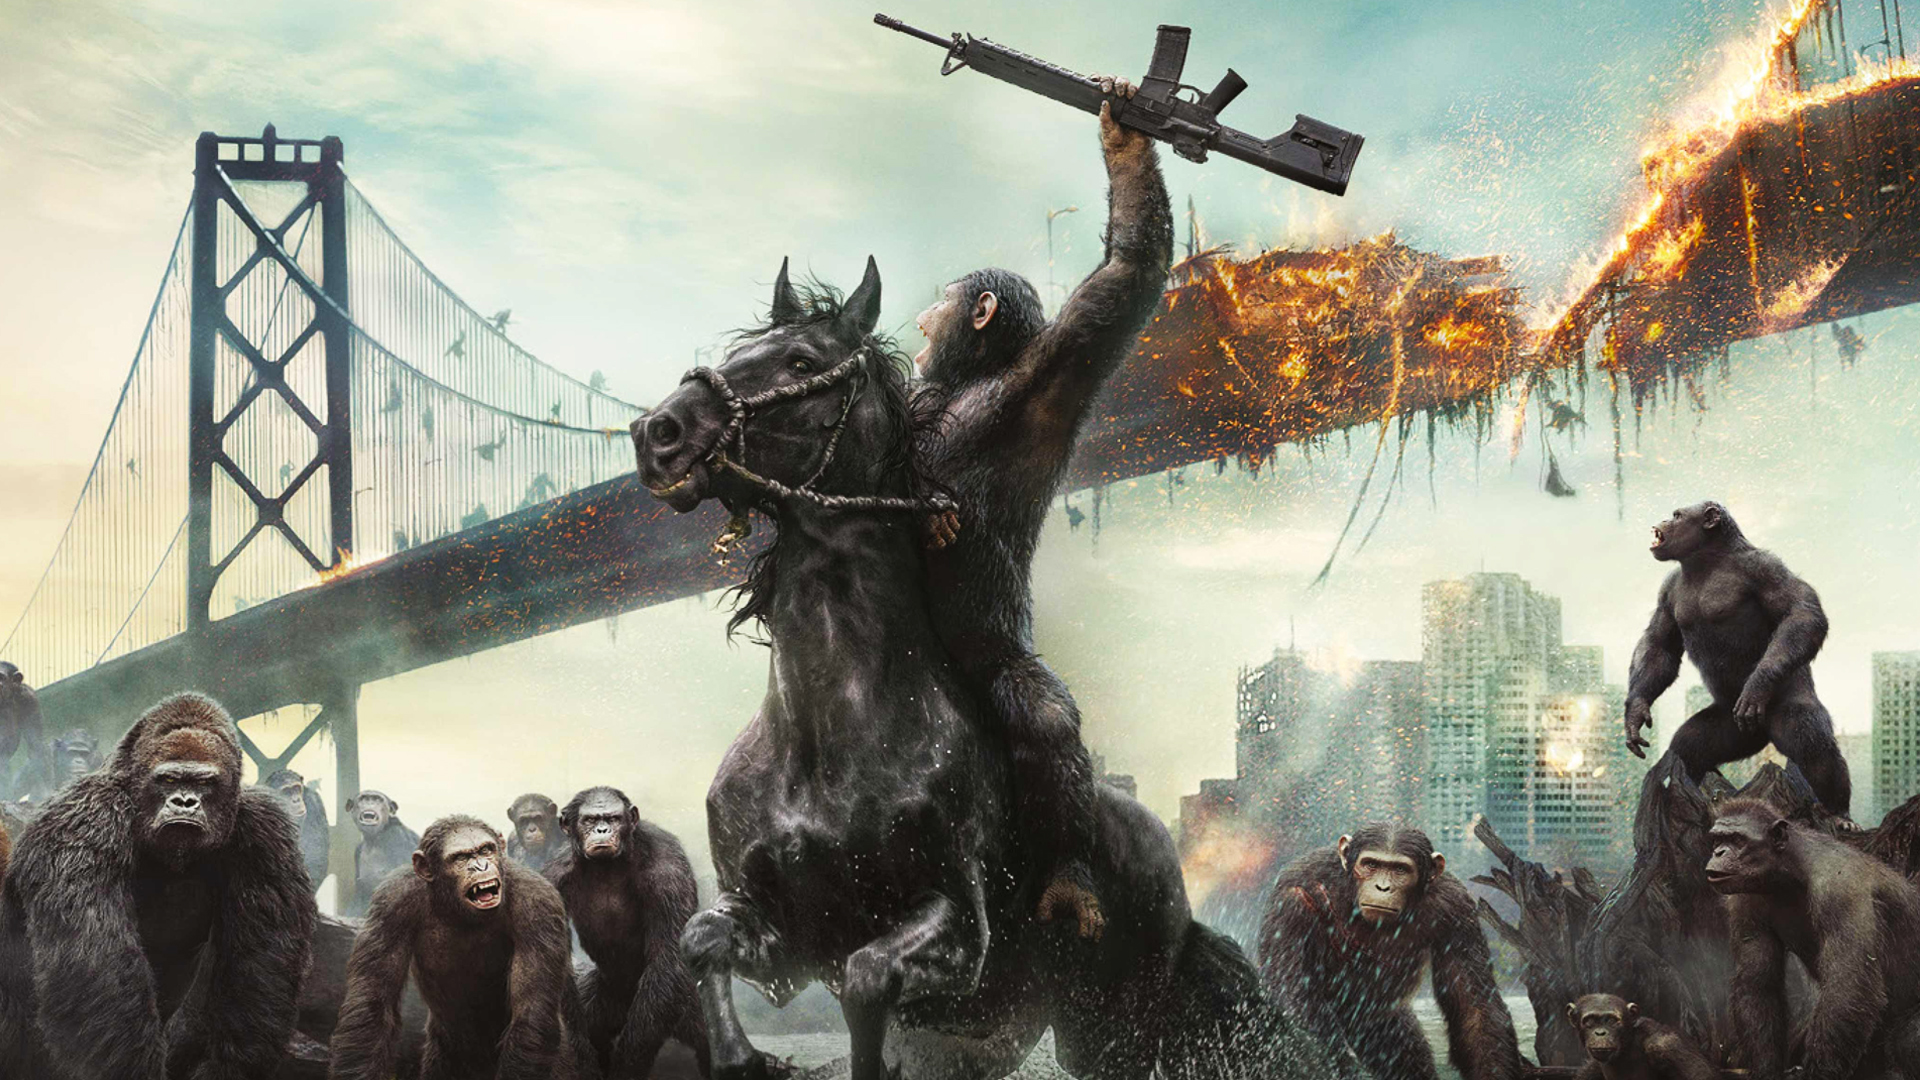 Dawn Of The Planet Of The Apes Wallpaper By Sachso74 On Deviantart